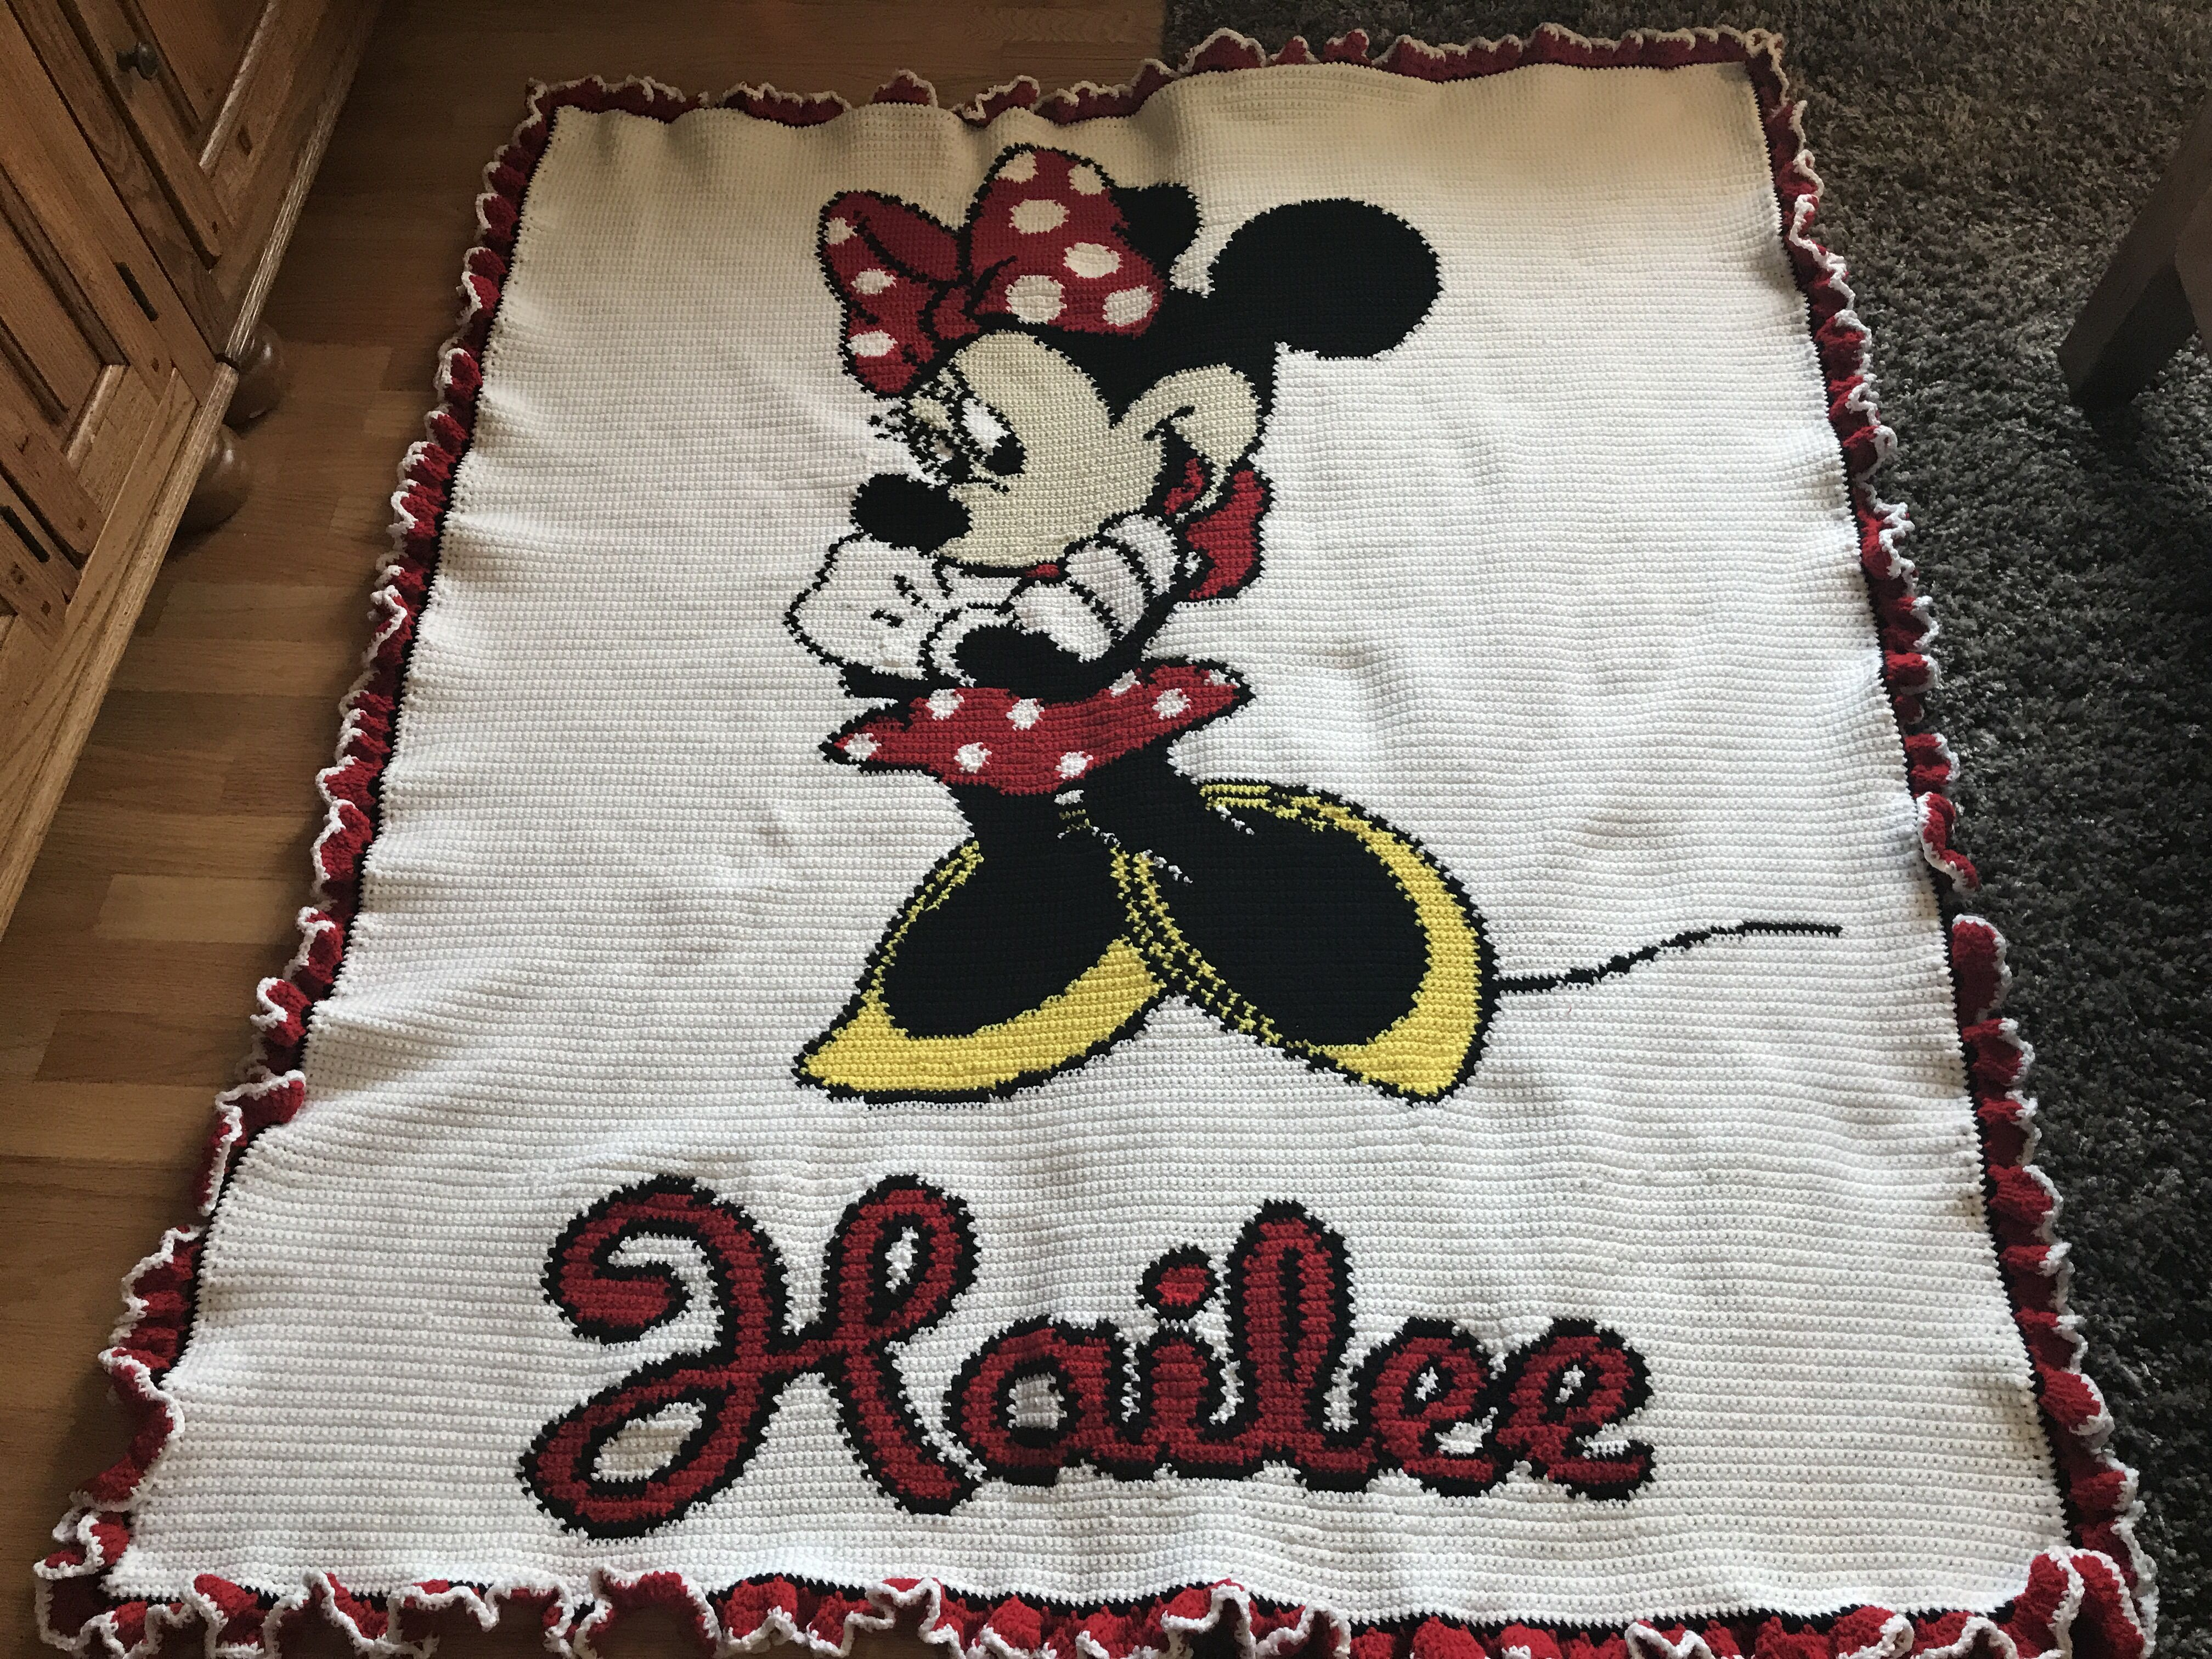 Minnie Mouse afghan for Hailee | Afghans | Pinterest | Afghans and Mice